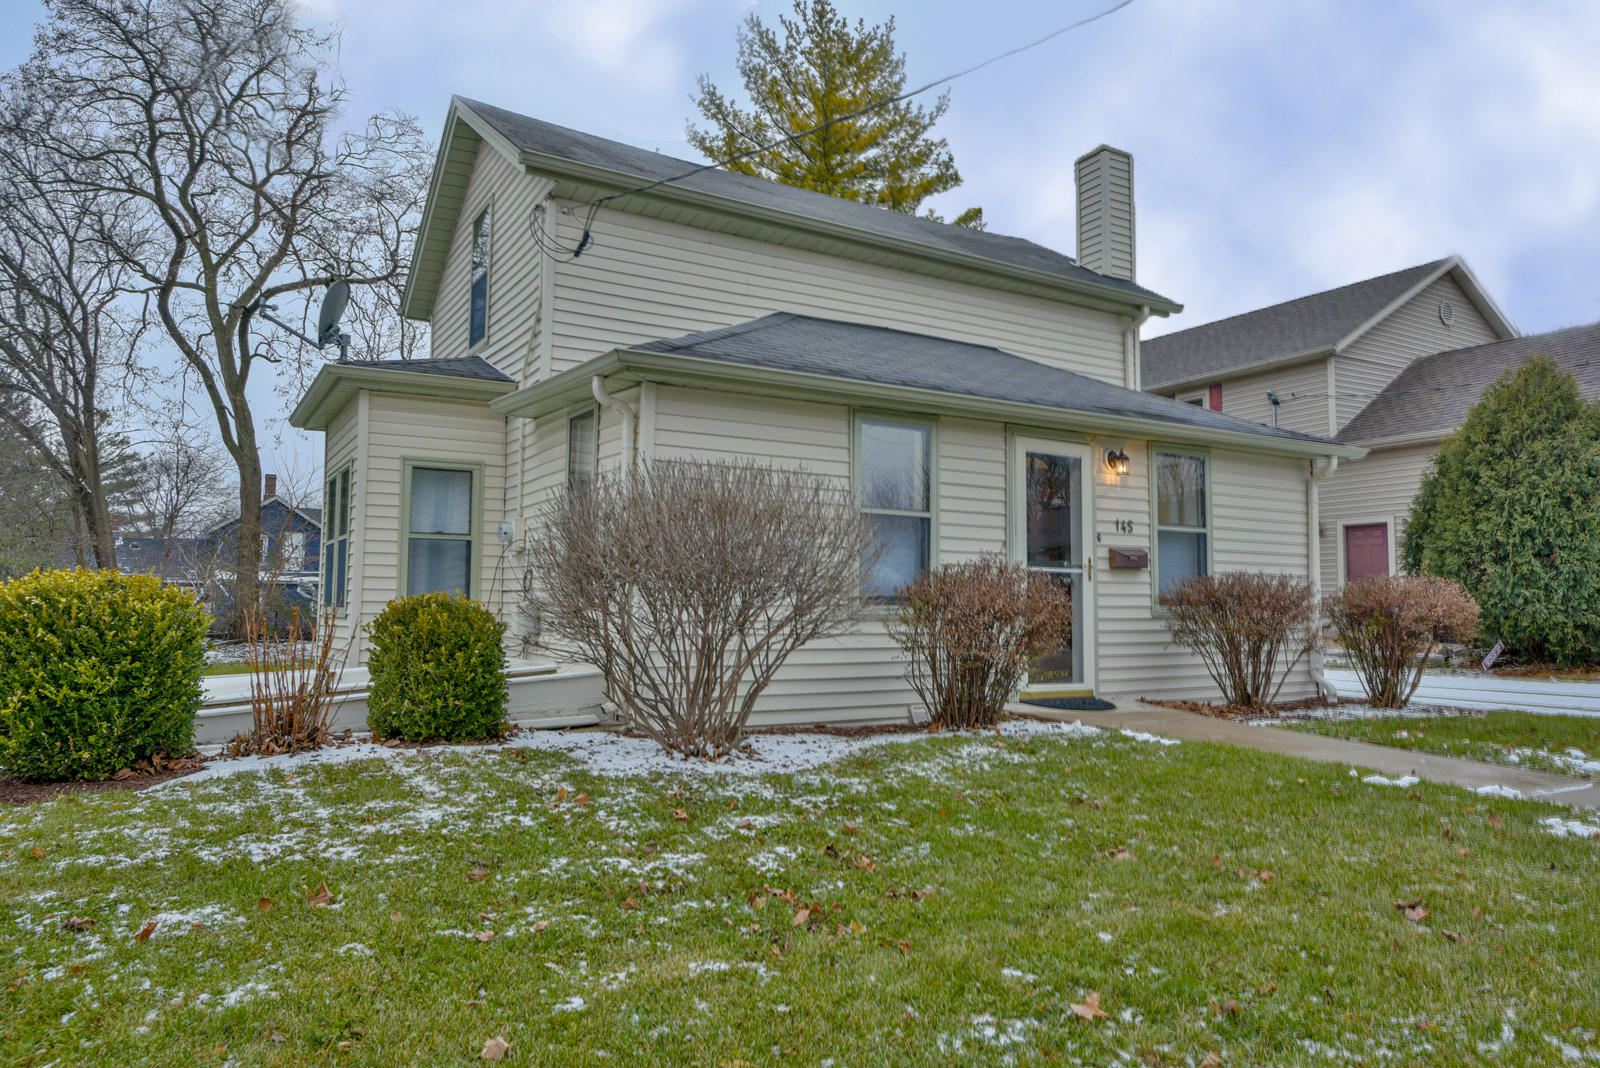 145 Sussex St, Pewaukee, Wisconsin 53072, 3 Bedrooms Bedrooms, ,1 BathroomBathrooms,Single-Family,For Sale,Sussex St,1616005